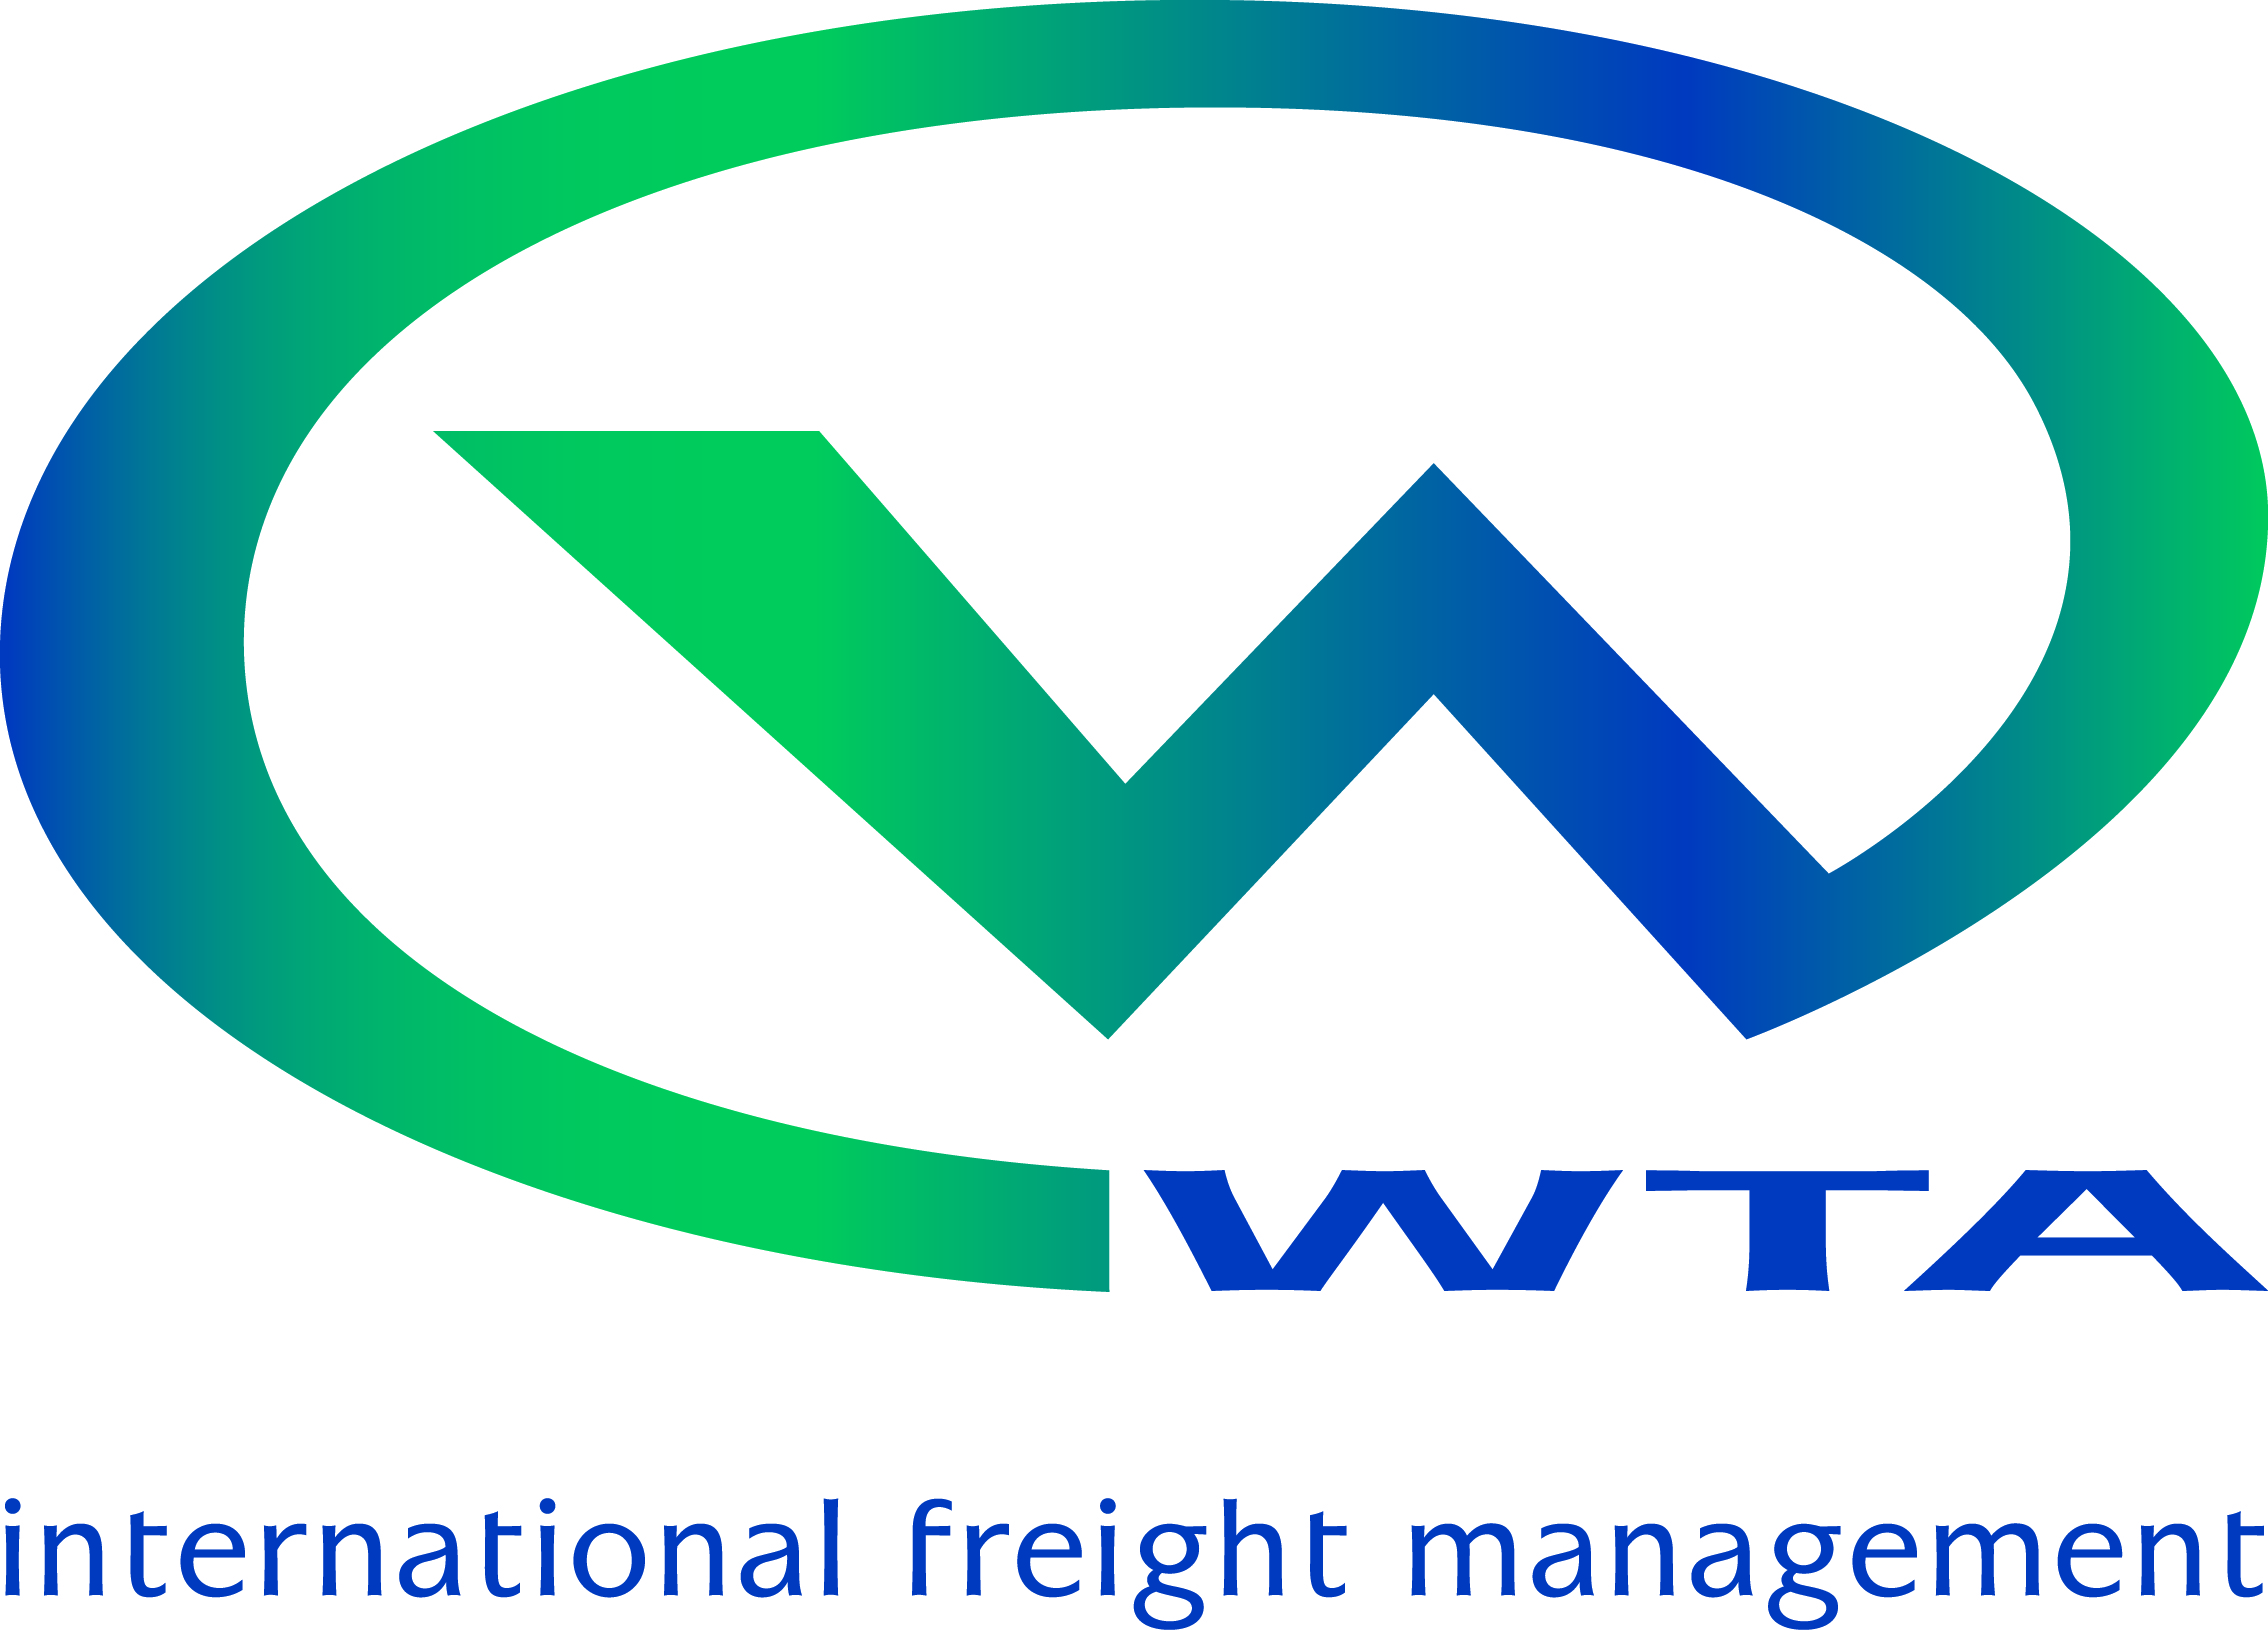 World Transport Agency Ltd